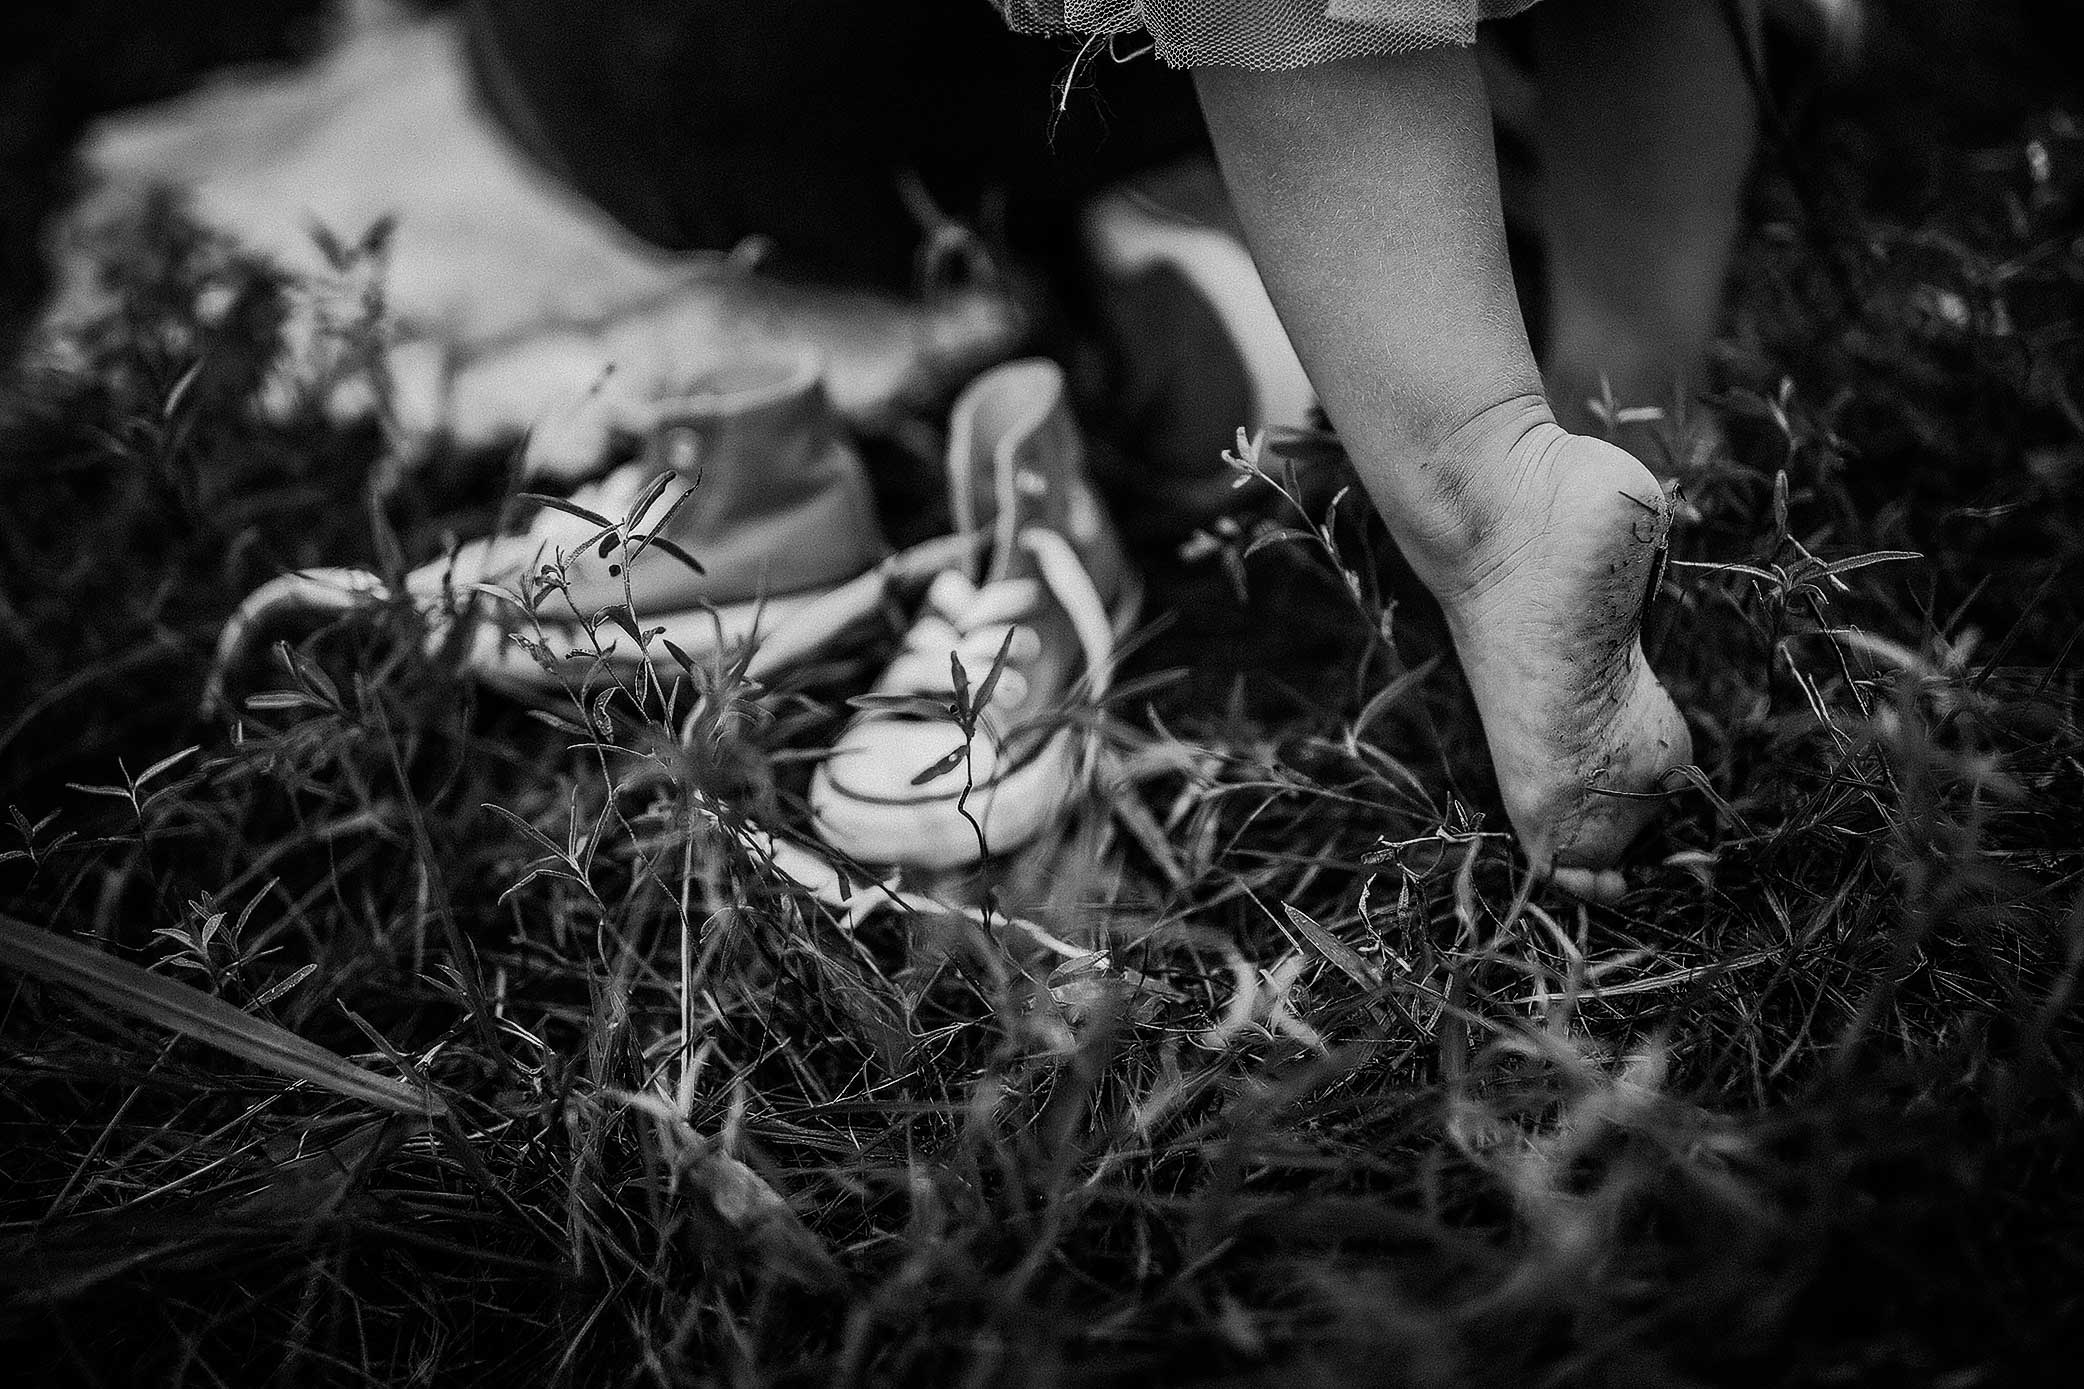 shelby-schiller-photography-family-child-barefoot-and-converse.jpg